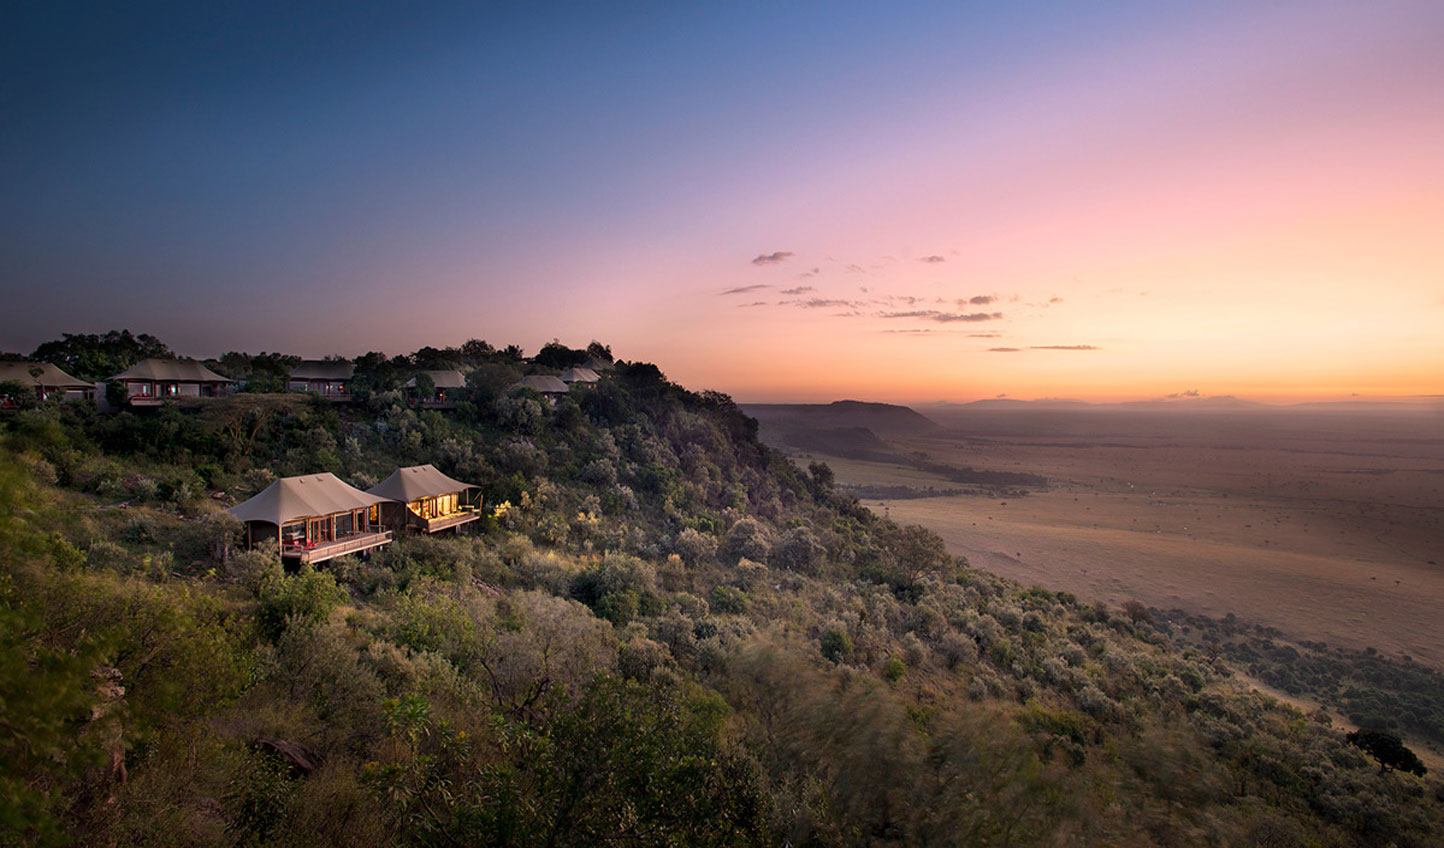 Your very own Out of Africa experience